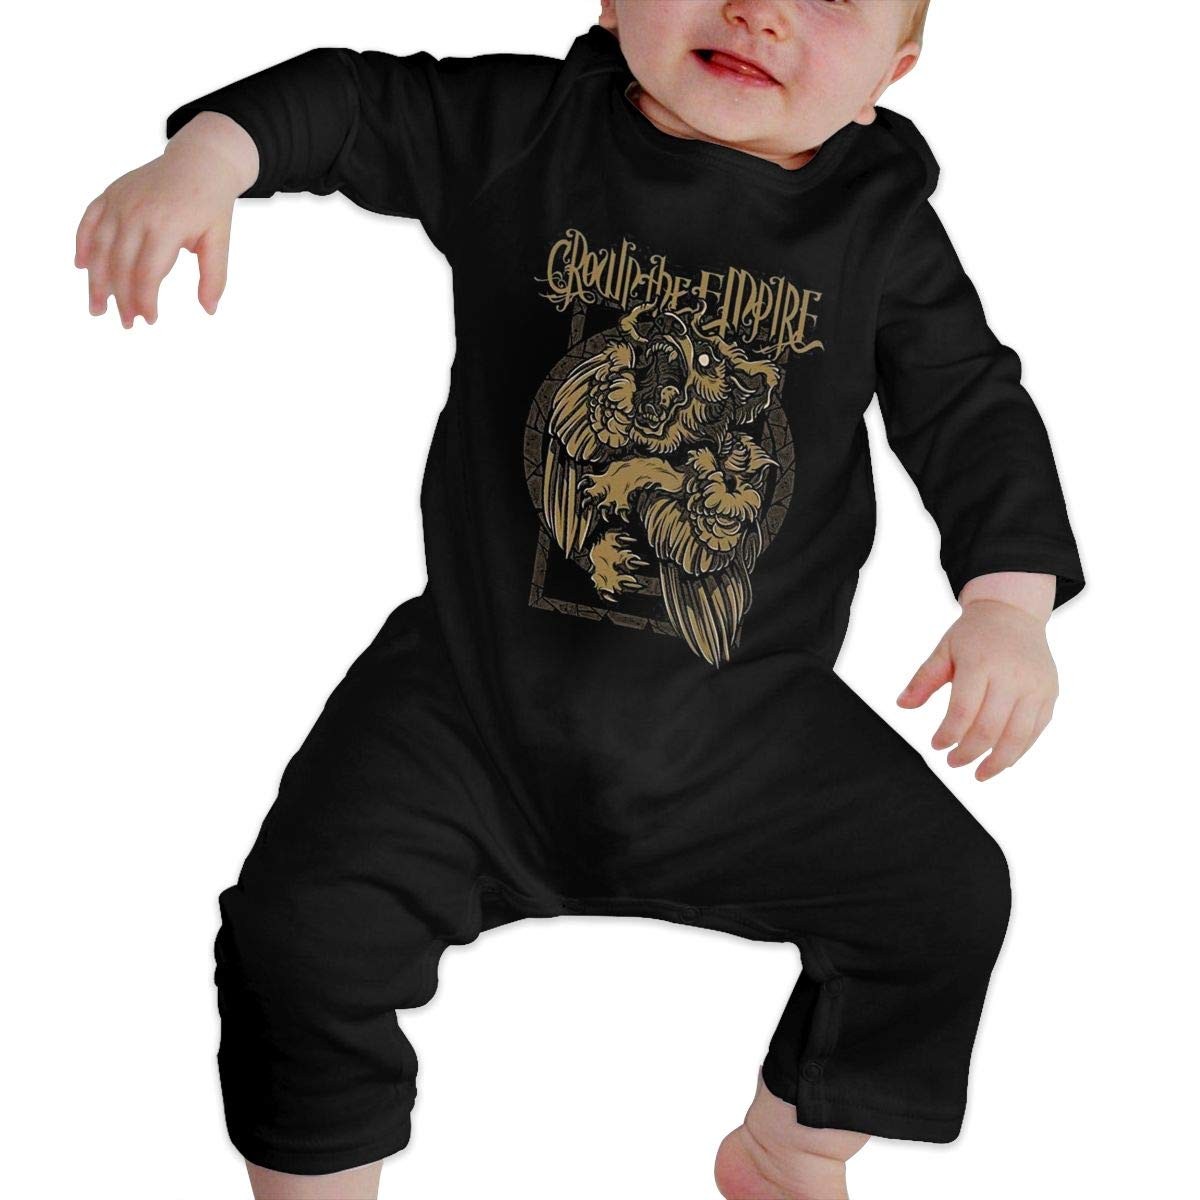 Fional Infant Long Sleeve Romper Crown-The-Empire Newborn Babys 0-24M Organic Cotton Jumpsuit Outfit